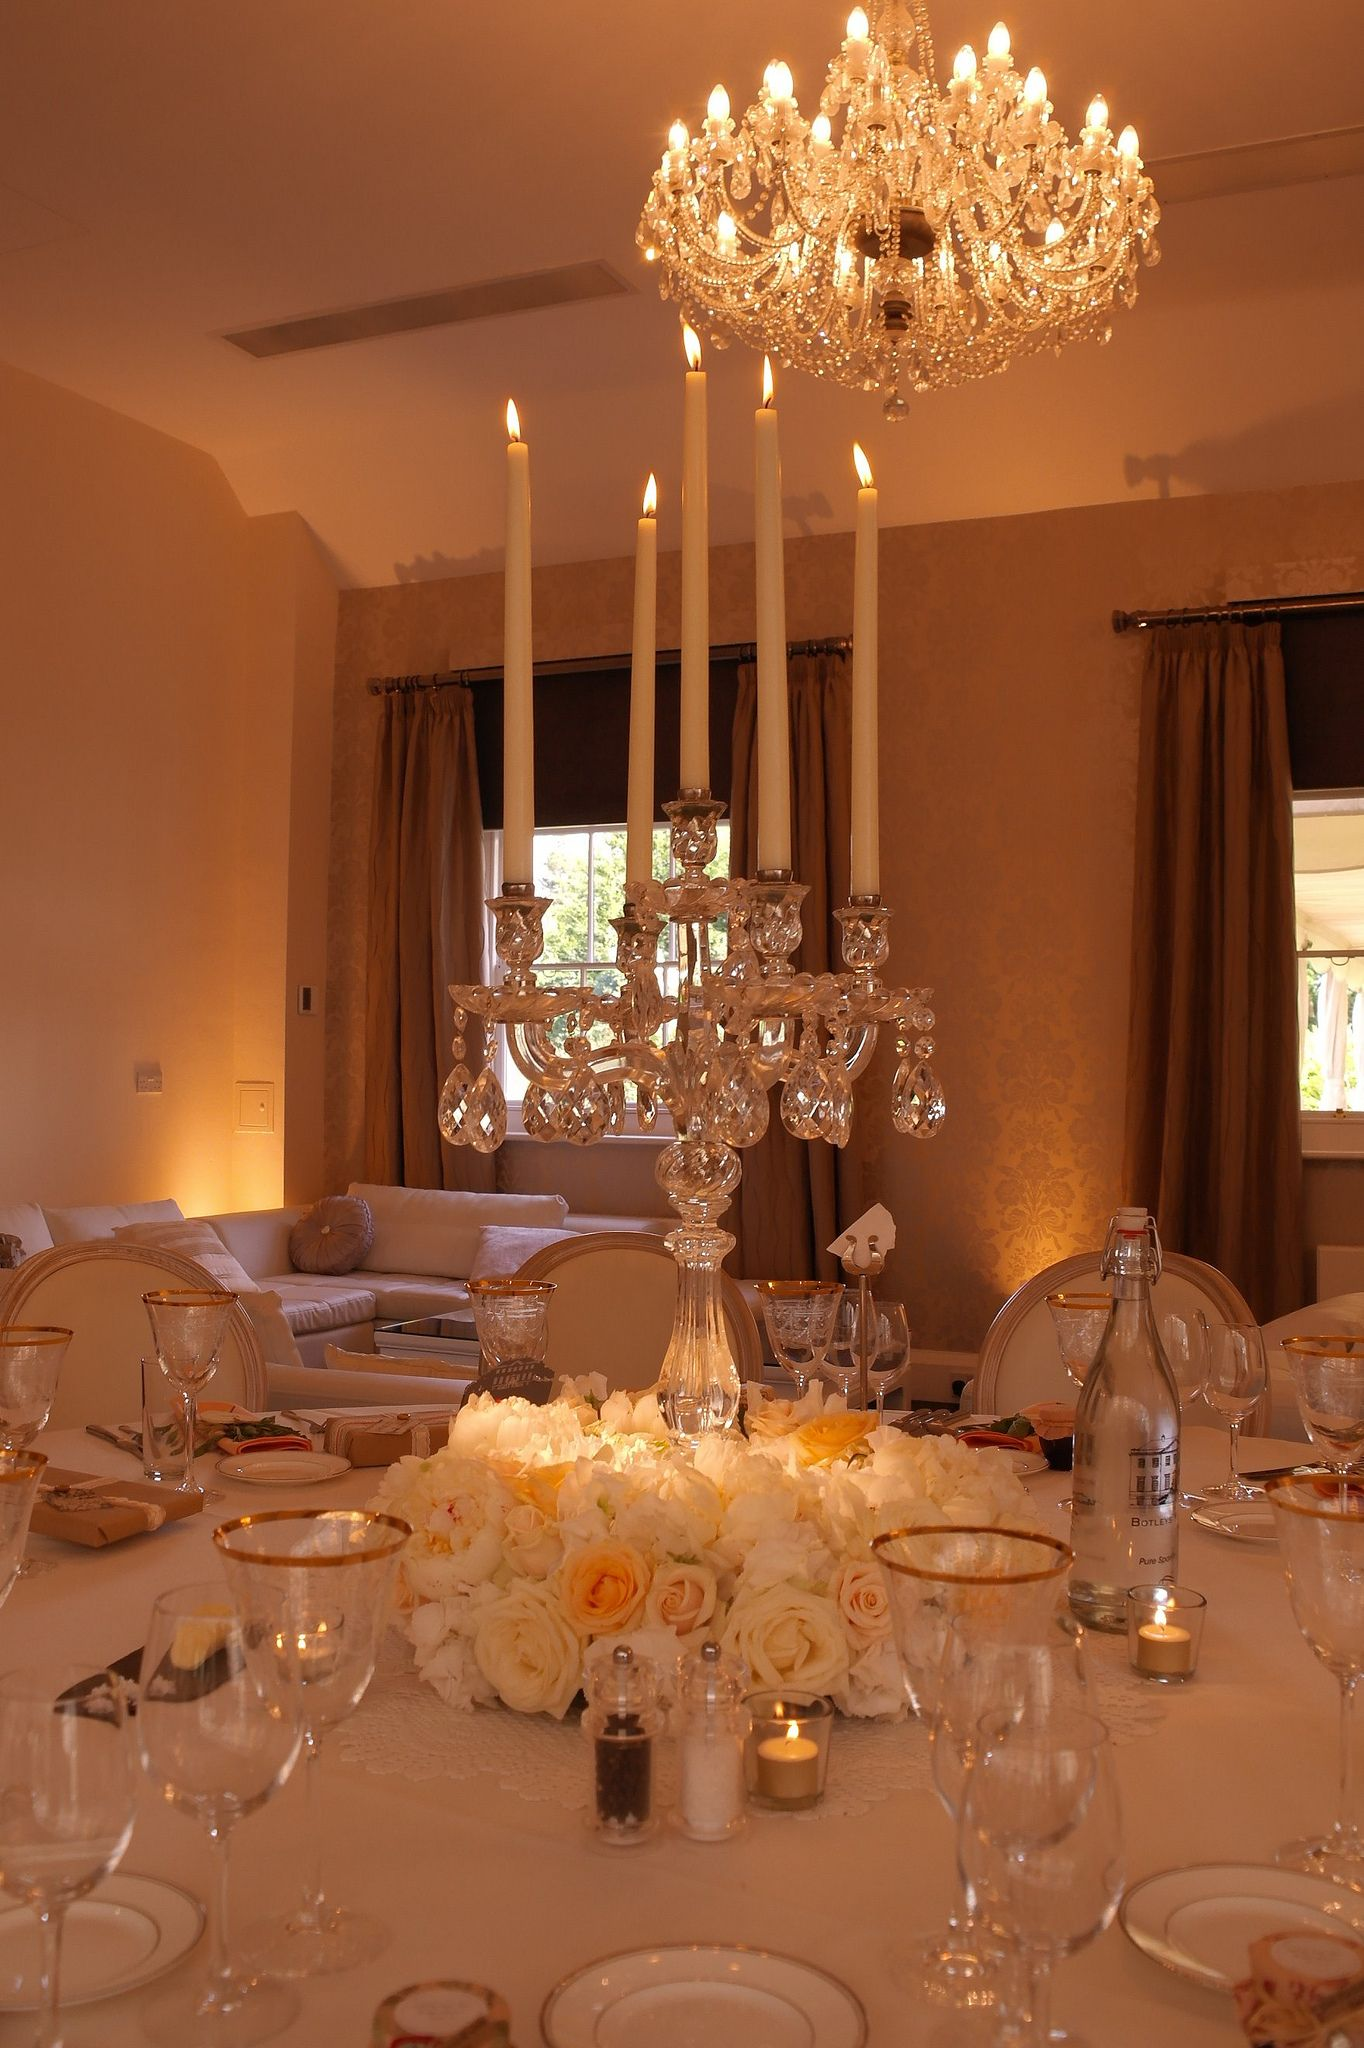 Botleys Mansion Surrey Gl Candelabra With 75cm Plinth And Ivory Candles Warm White Wall Uplighterswedding Themeswedding Venuescorporate